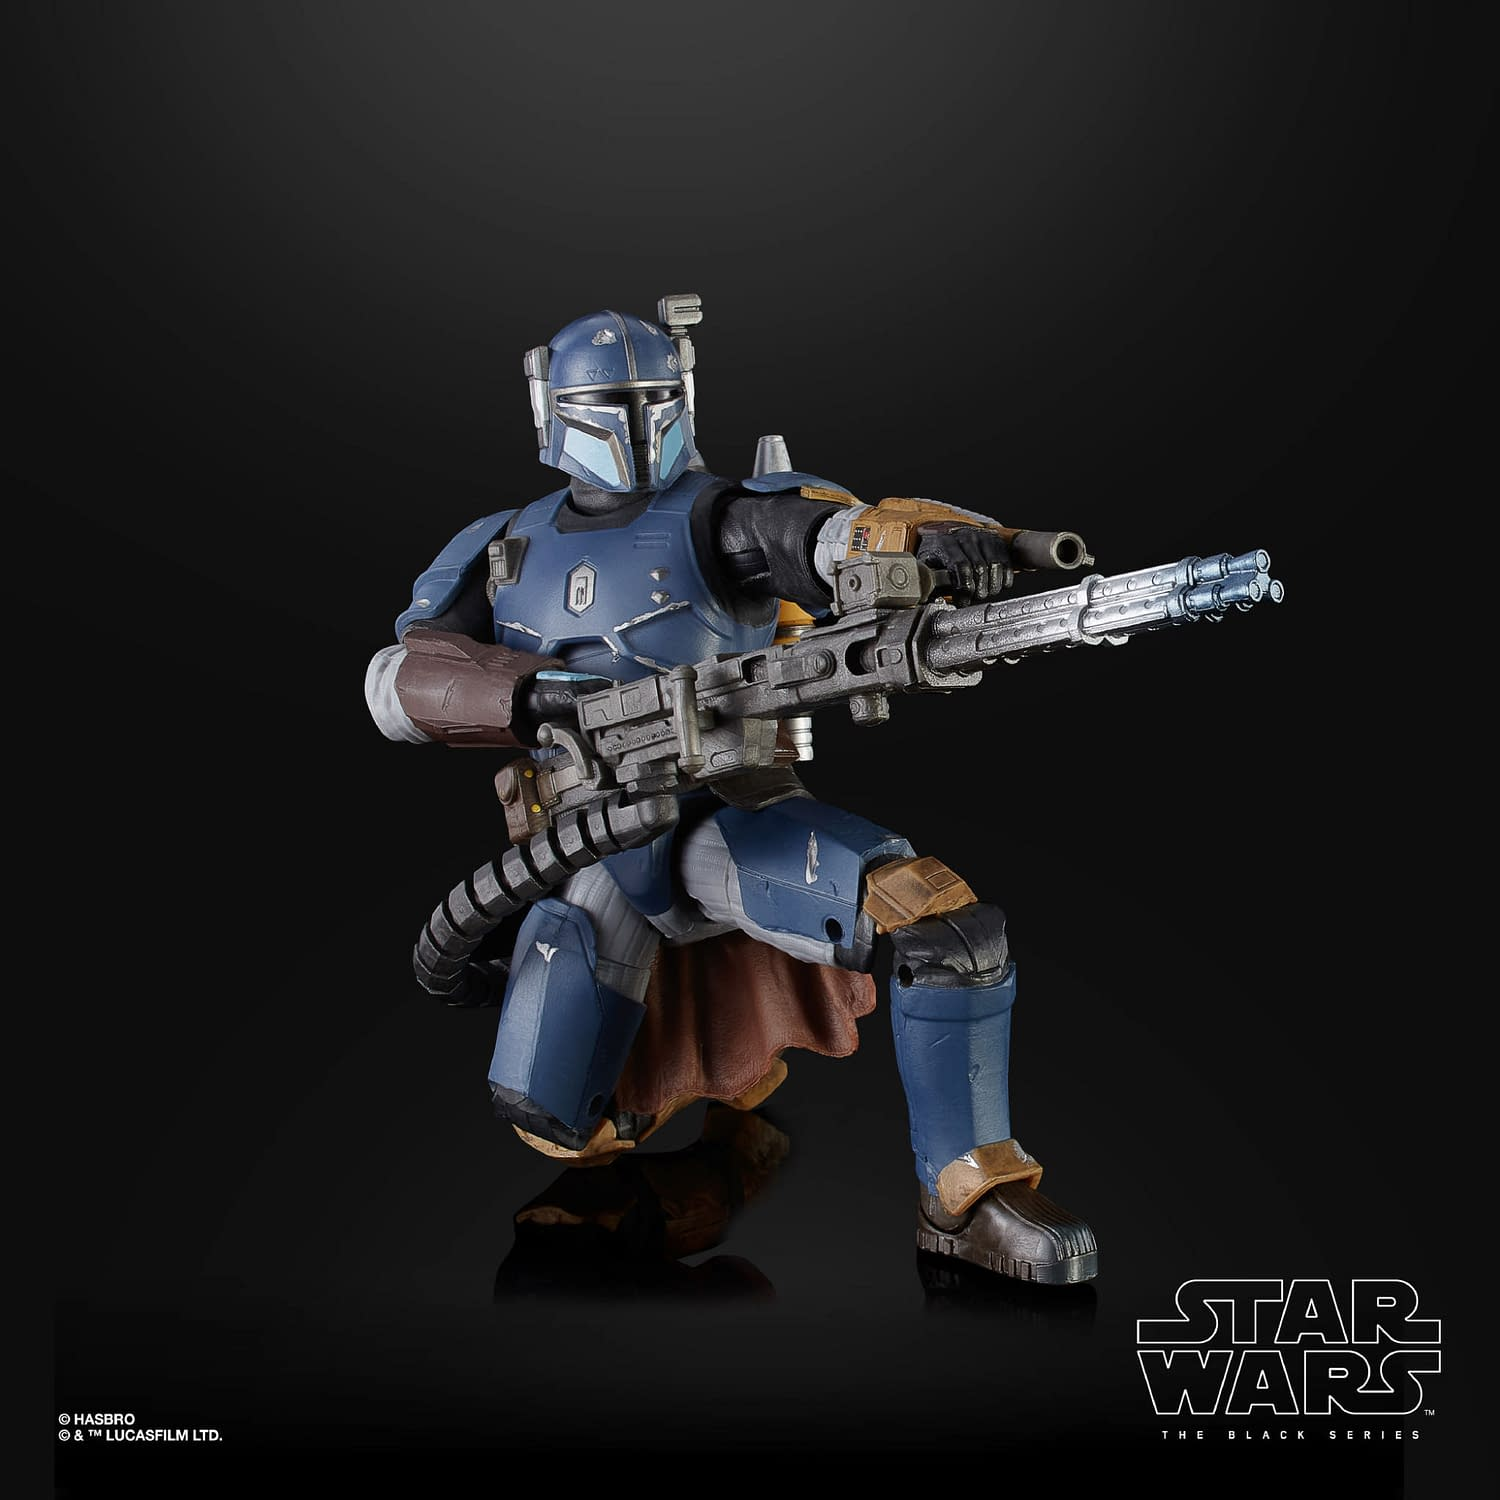 Heavy Infantry Mandalorian Arrives with New Black Series Figure